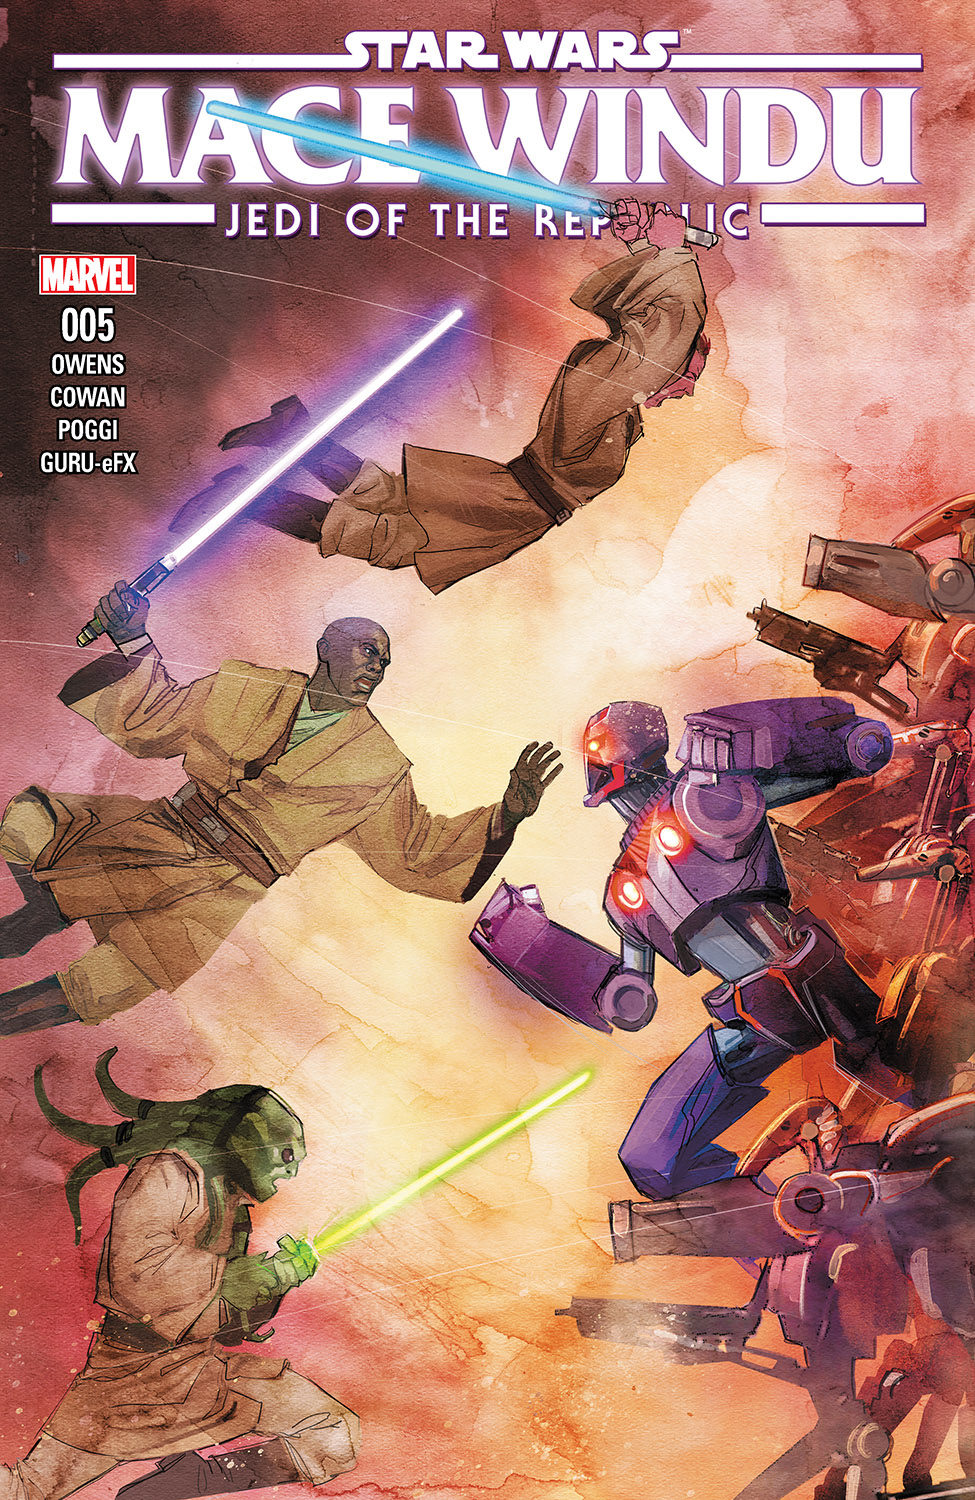 Star Wars: Mace Windu (2017) #5